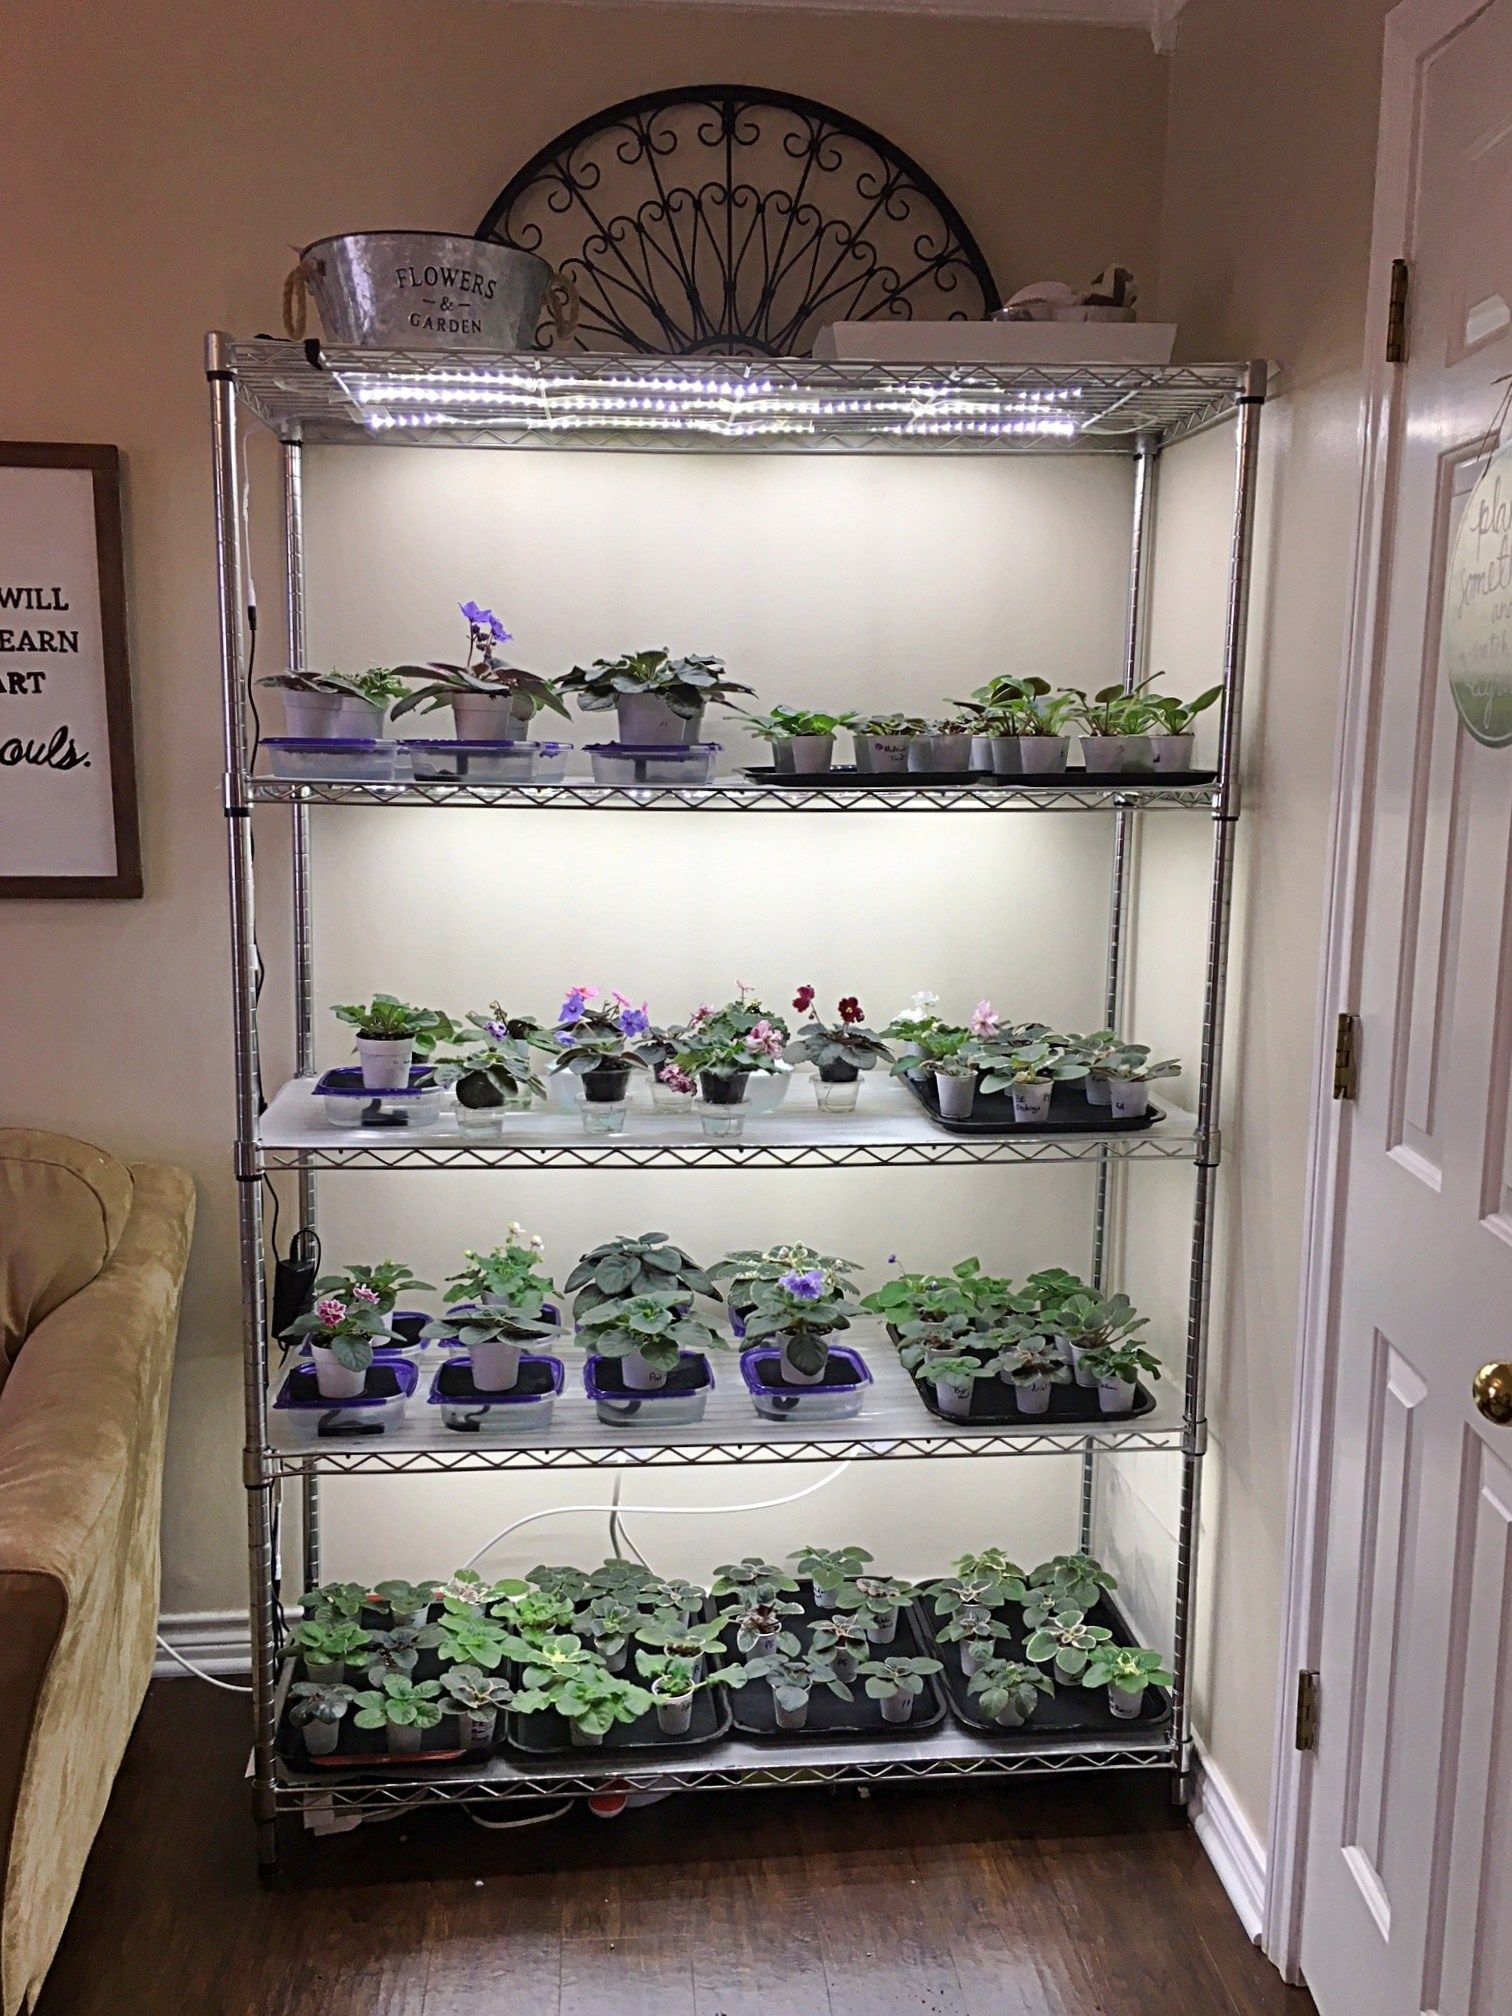 How To Grow Plants With Led Lights African Violet Light Stand Grow Lights For Plants Diy Plant Stand Indoor Plant Shelves